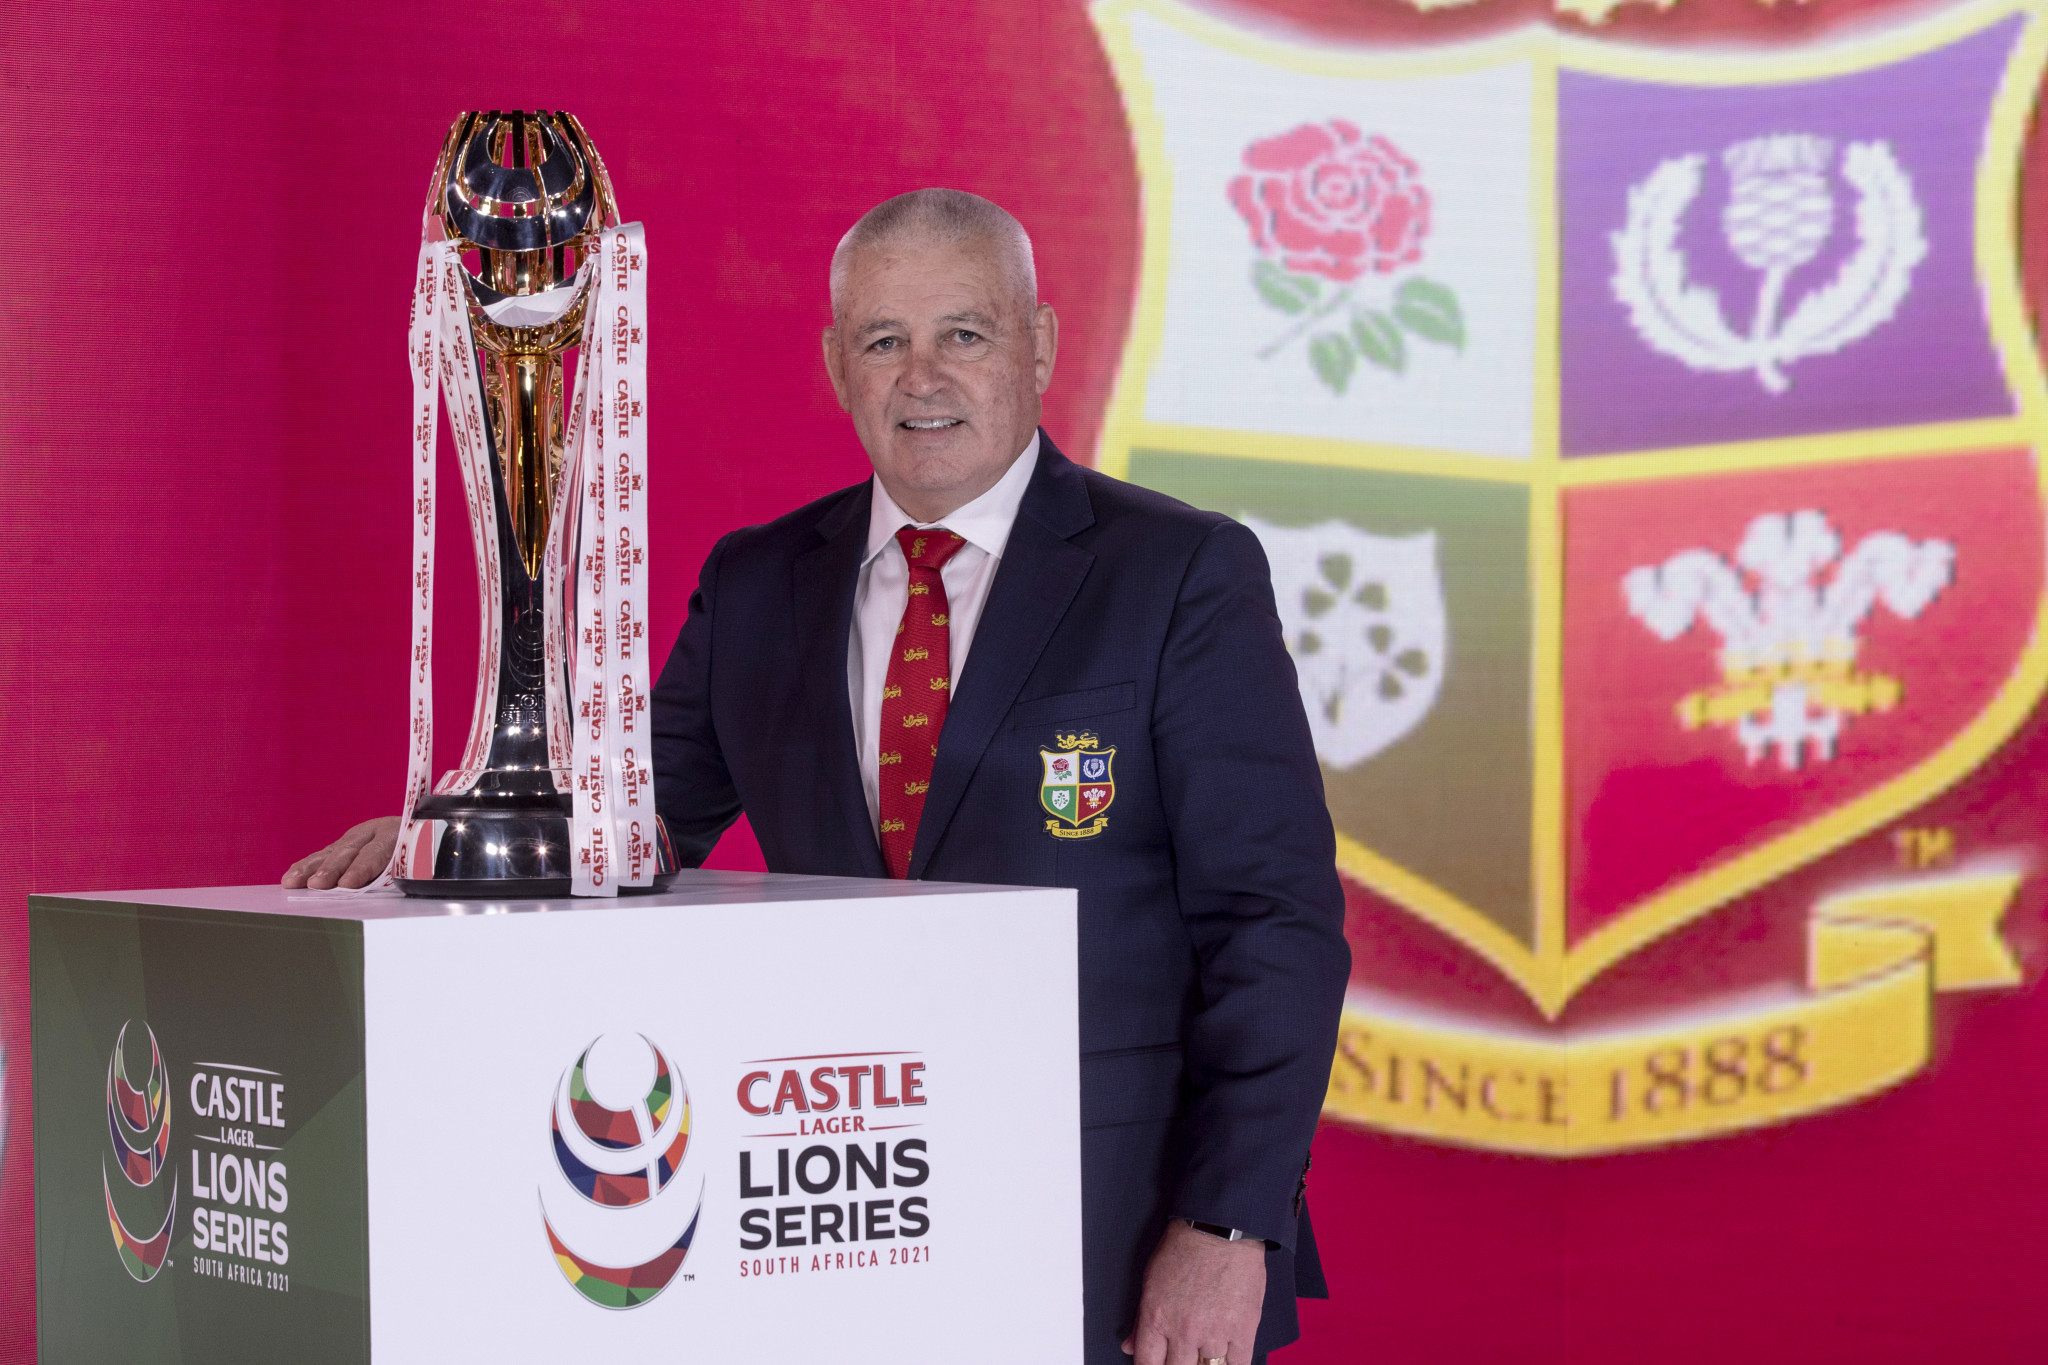 British and Irish Lions tour to South Africa to be held behind closed doors